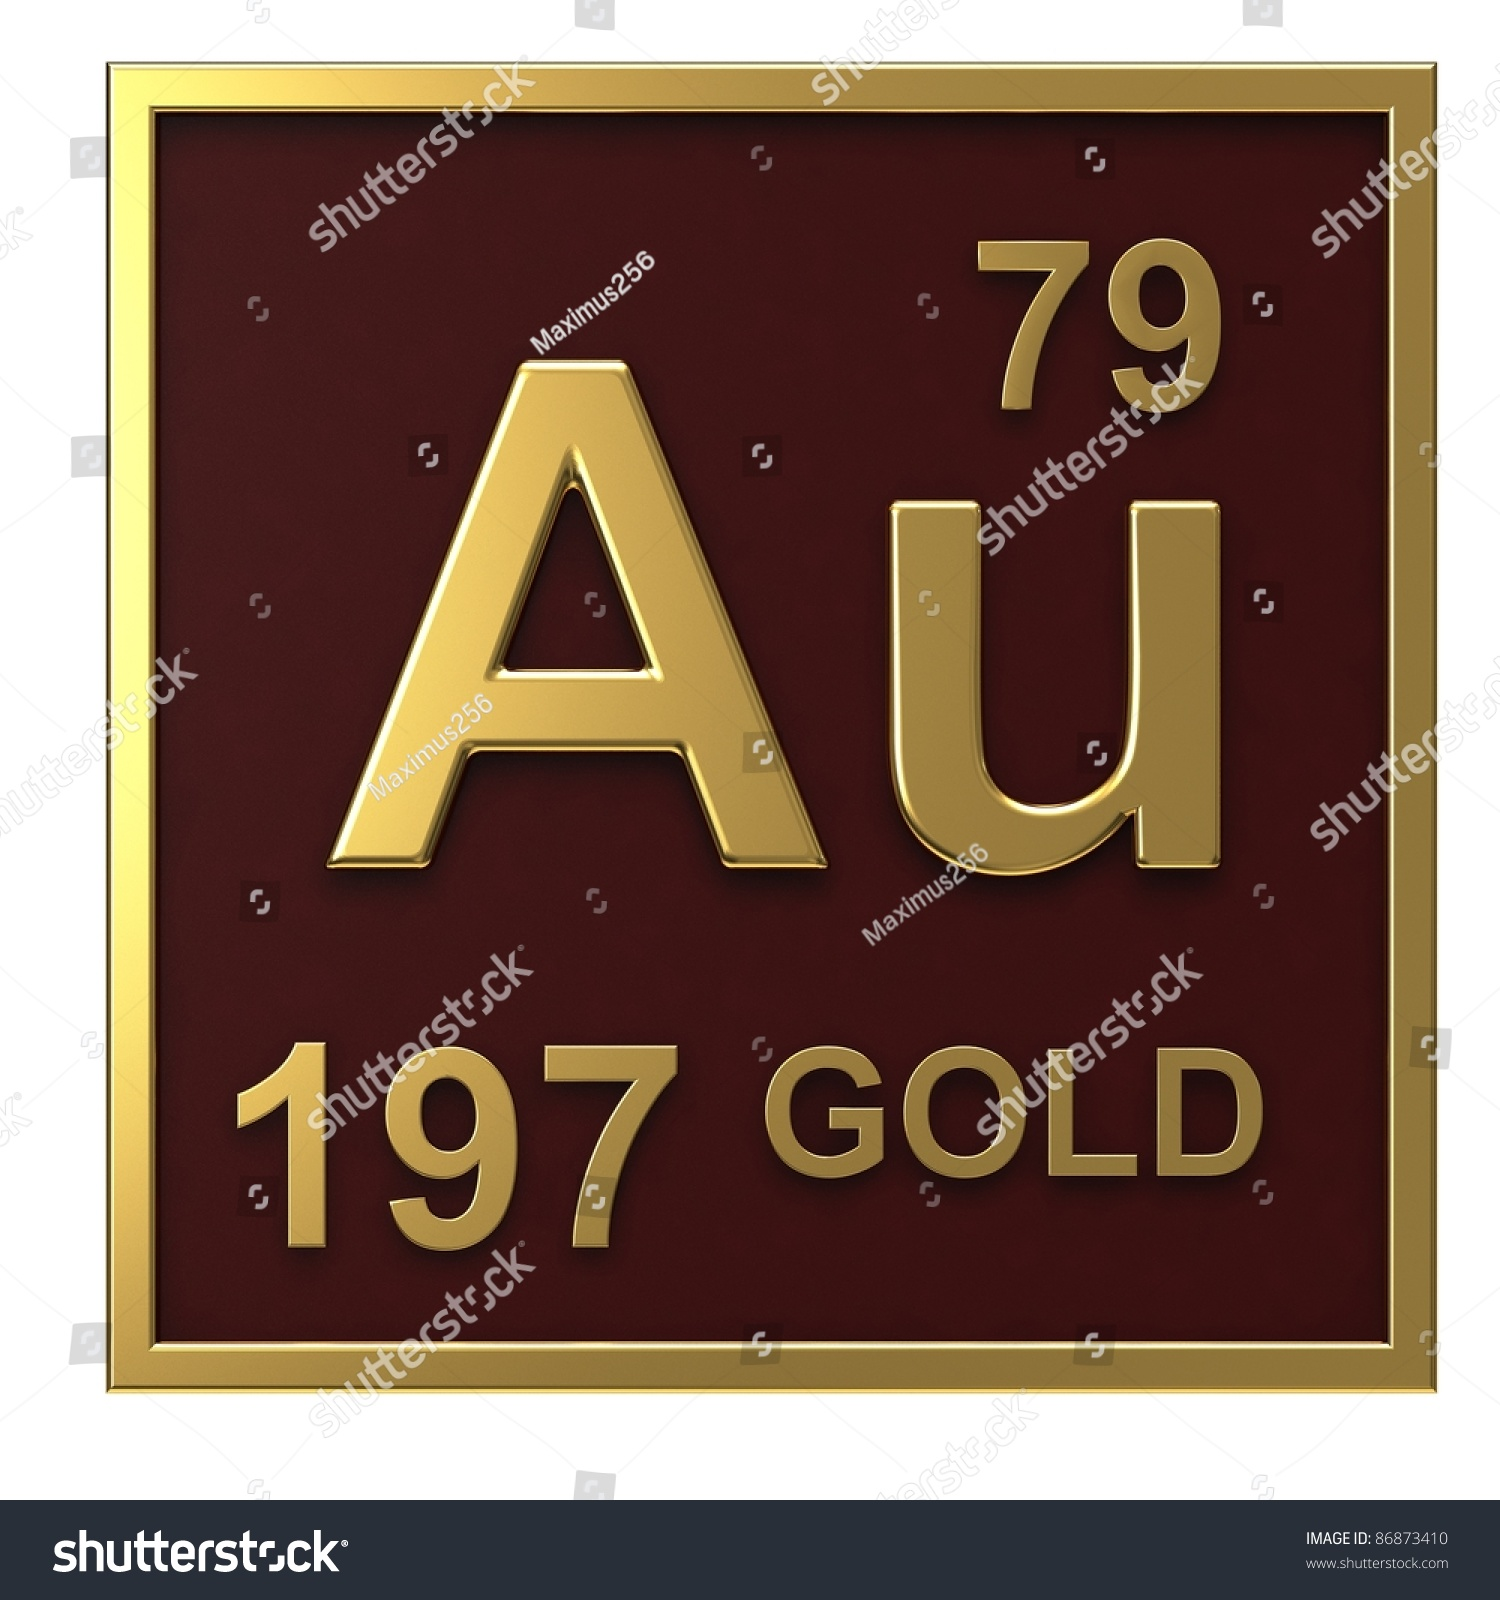 Element periodic table gold isolated on stock illustration element of the periodic table gold isolated on white background gamestrikefo Images